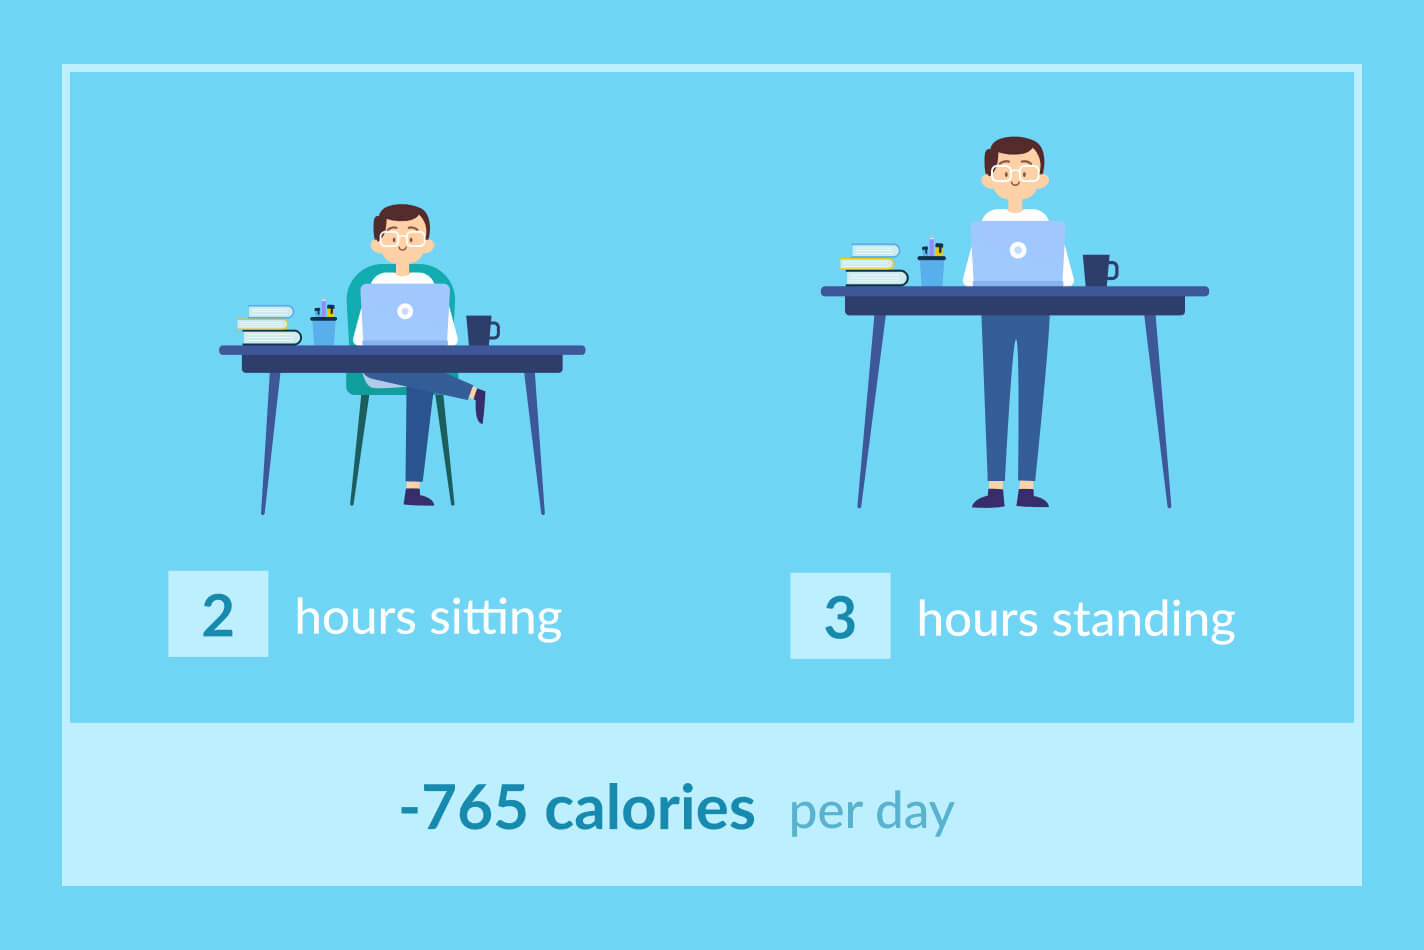 calorie-burn-calculator-calories-per-day